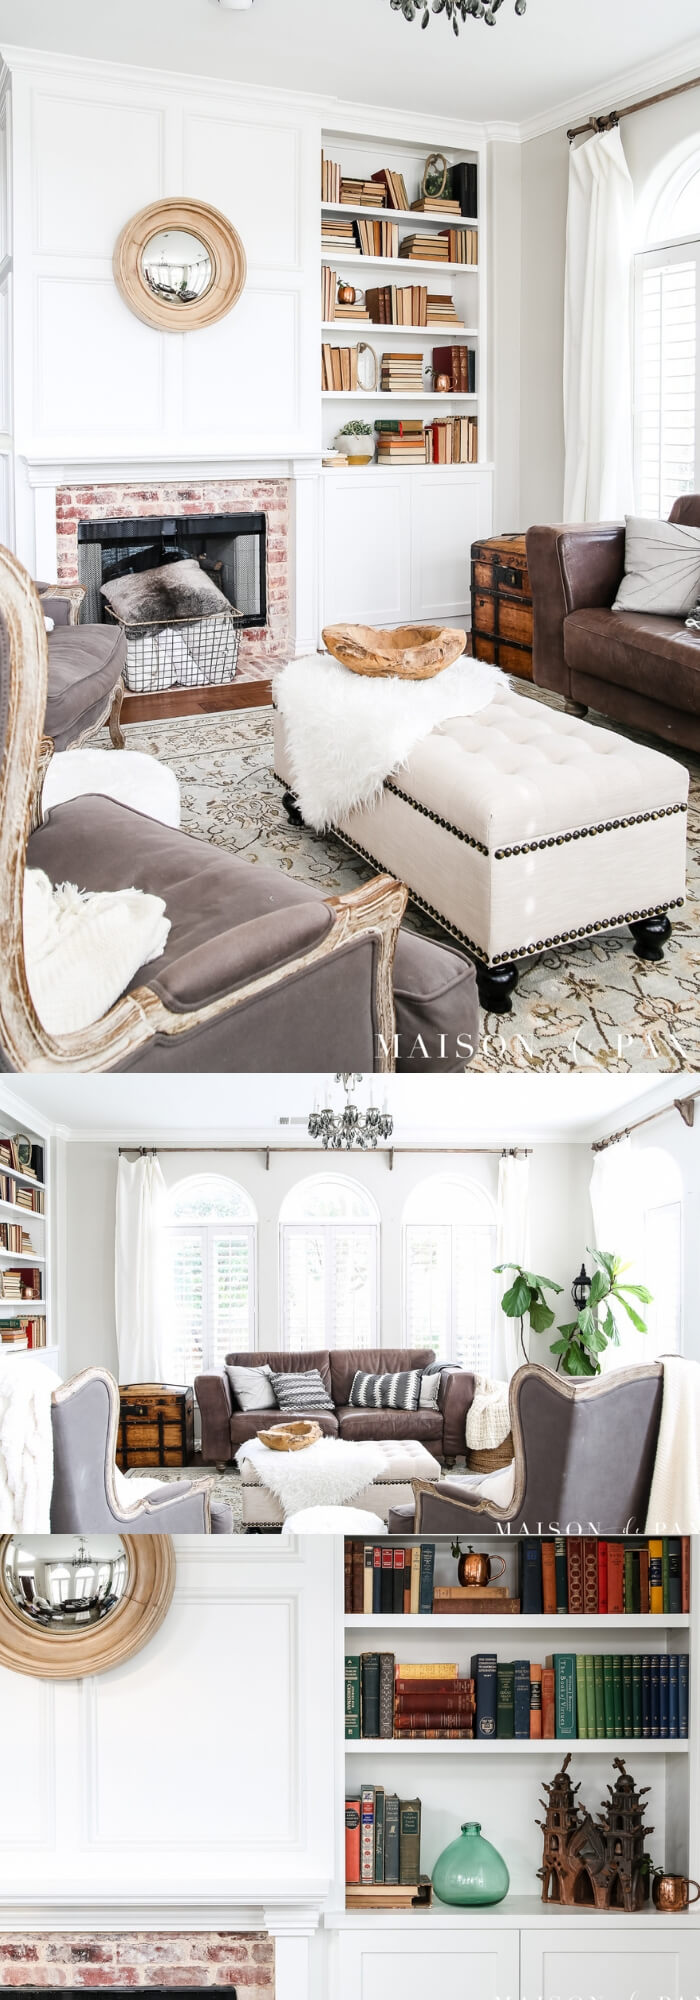 Transitioning from winter whites to neutrals, blues, and greens   Spring Spruce-Up - Quick, Cheap Home Décor Ideas   FarmFoodFamily.com